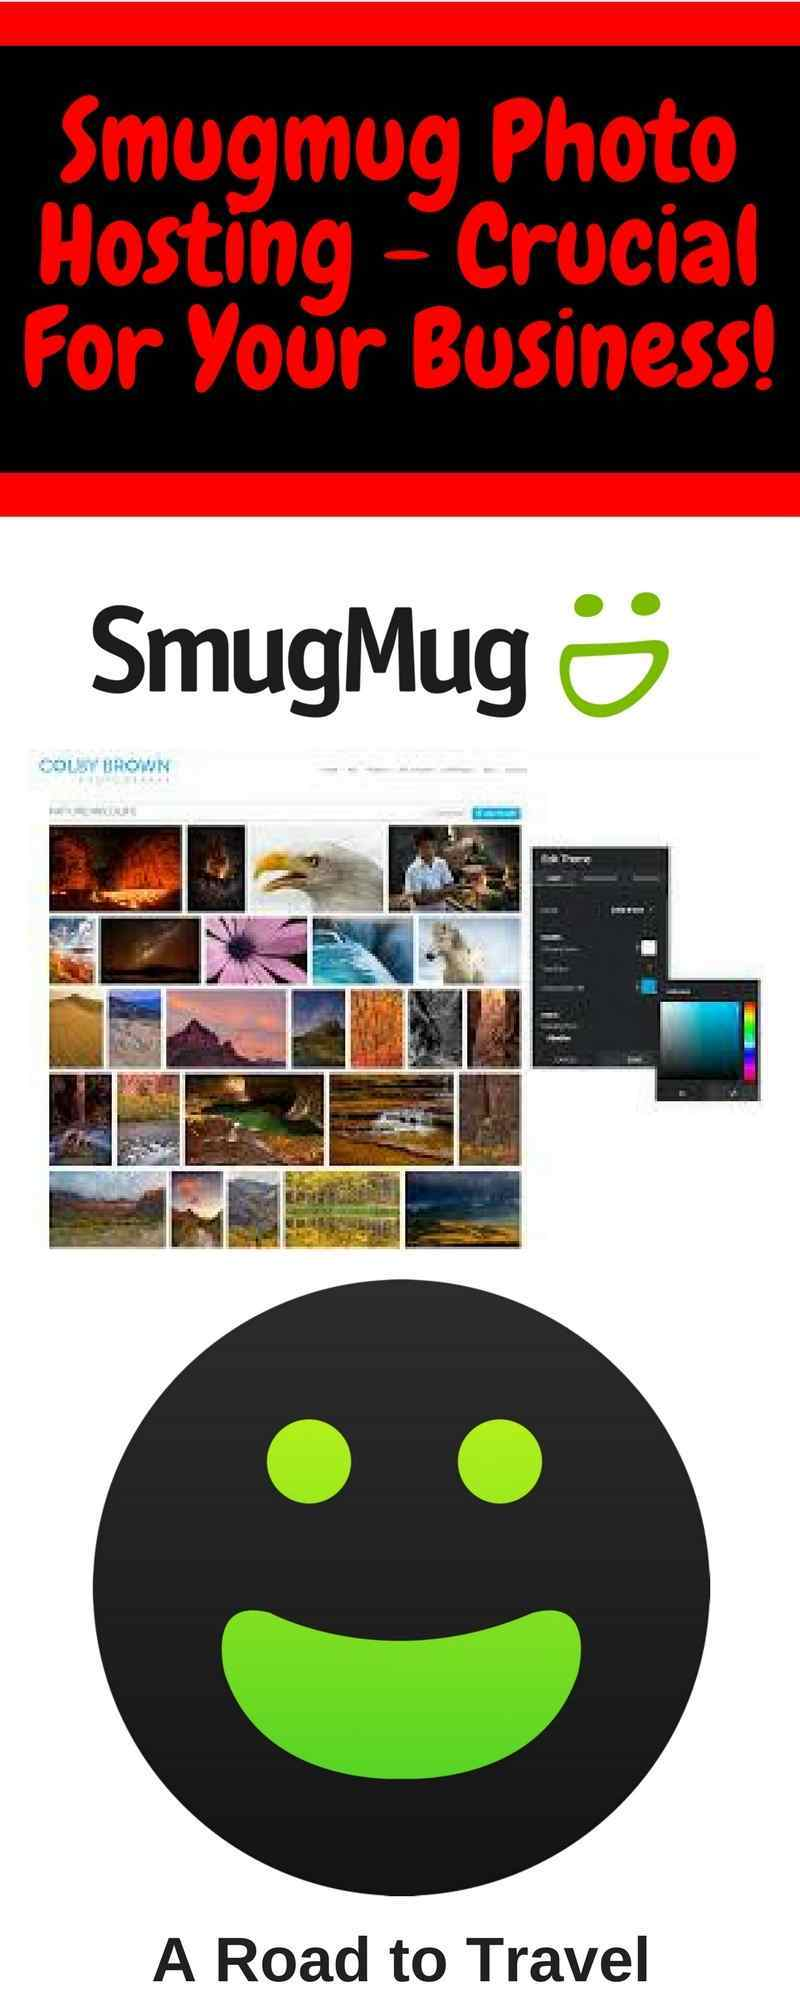 Smugmug Photo Hosting: Crucial For Your Business!  | Blogging Tips | Blogging For Beginners | Blogging For Money | Blogging Ideas | How to Get Jobs Abroad | Online Business Success | Online Business Success Tips | Pinterest Promotions | ARoadToTravel.com